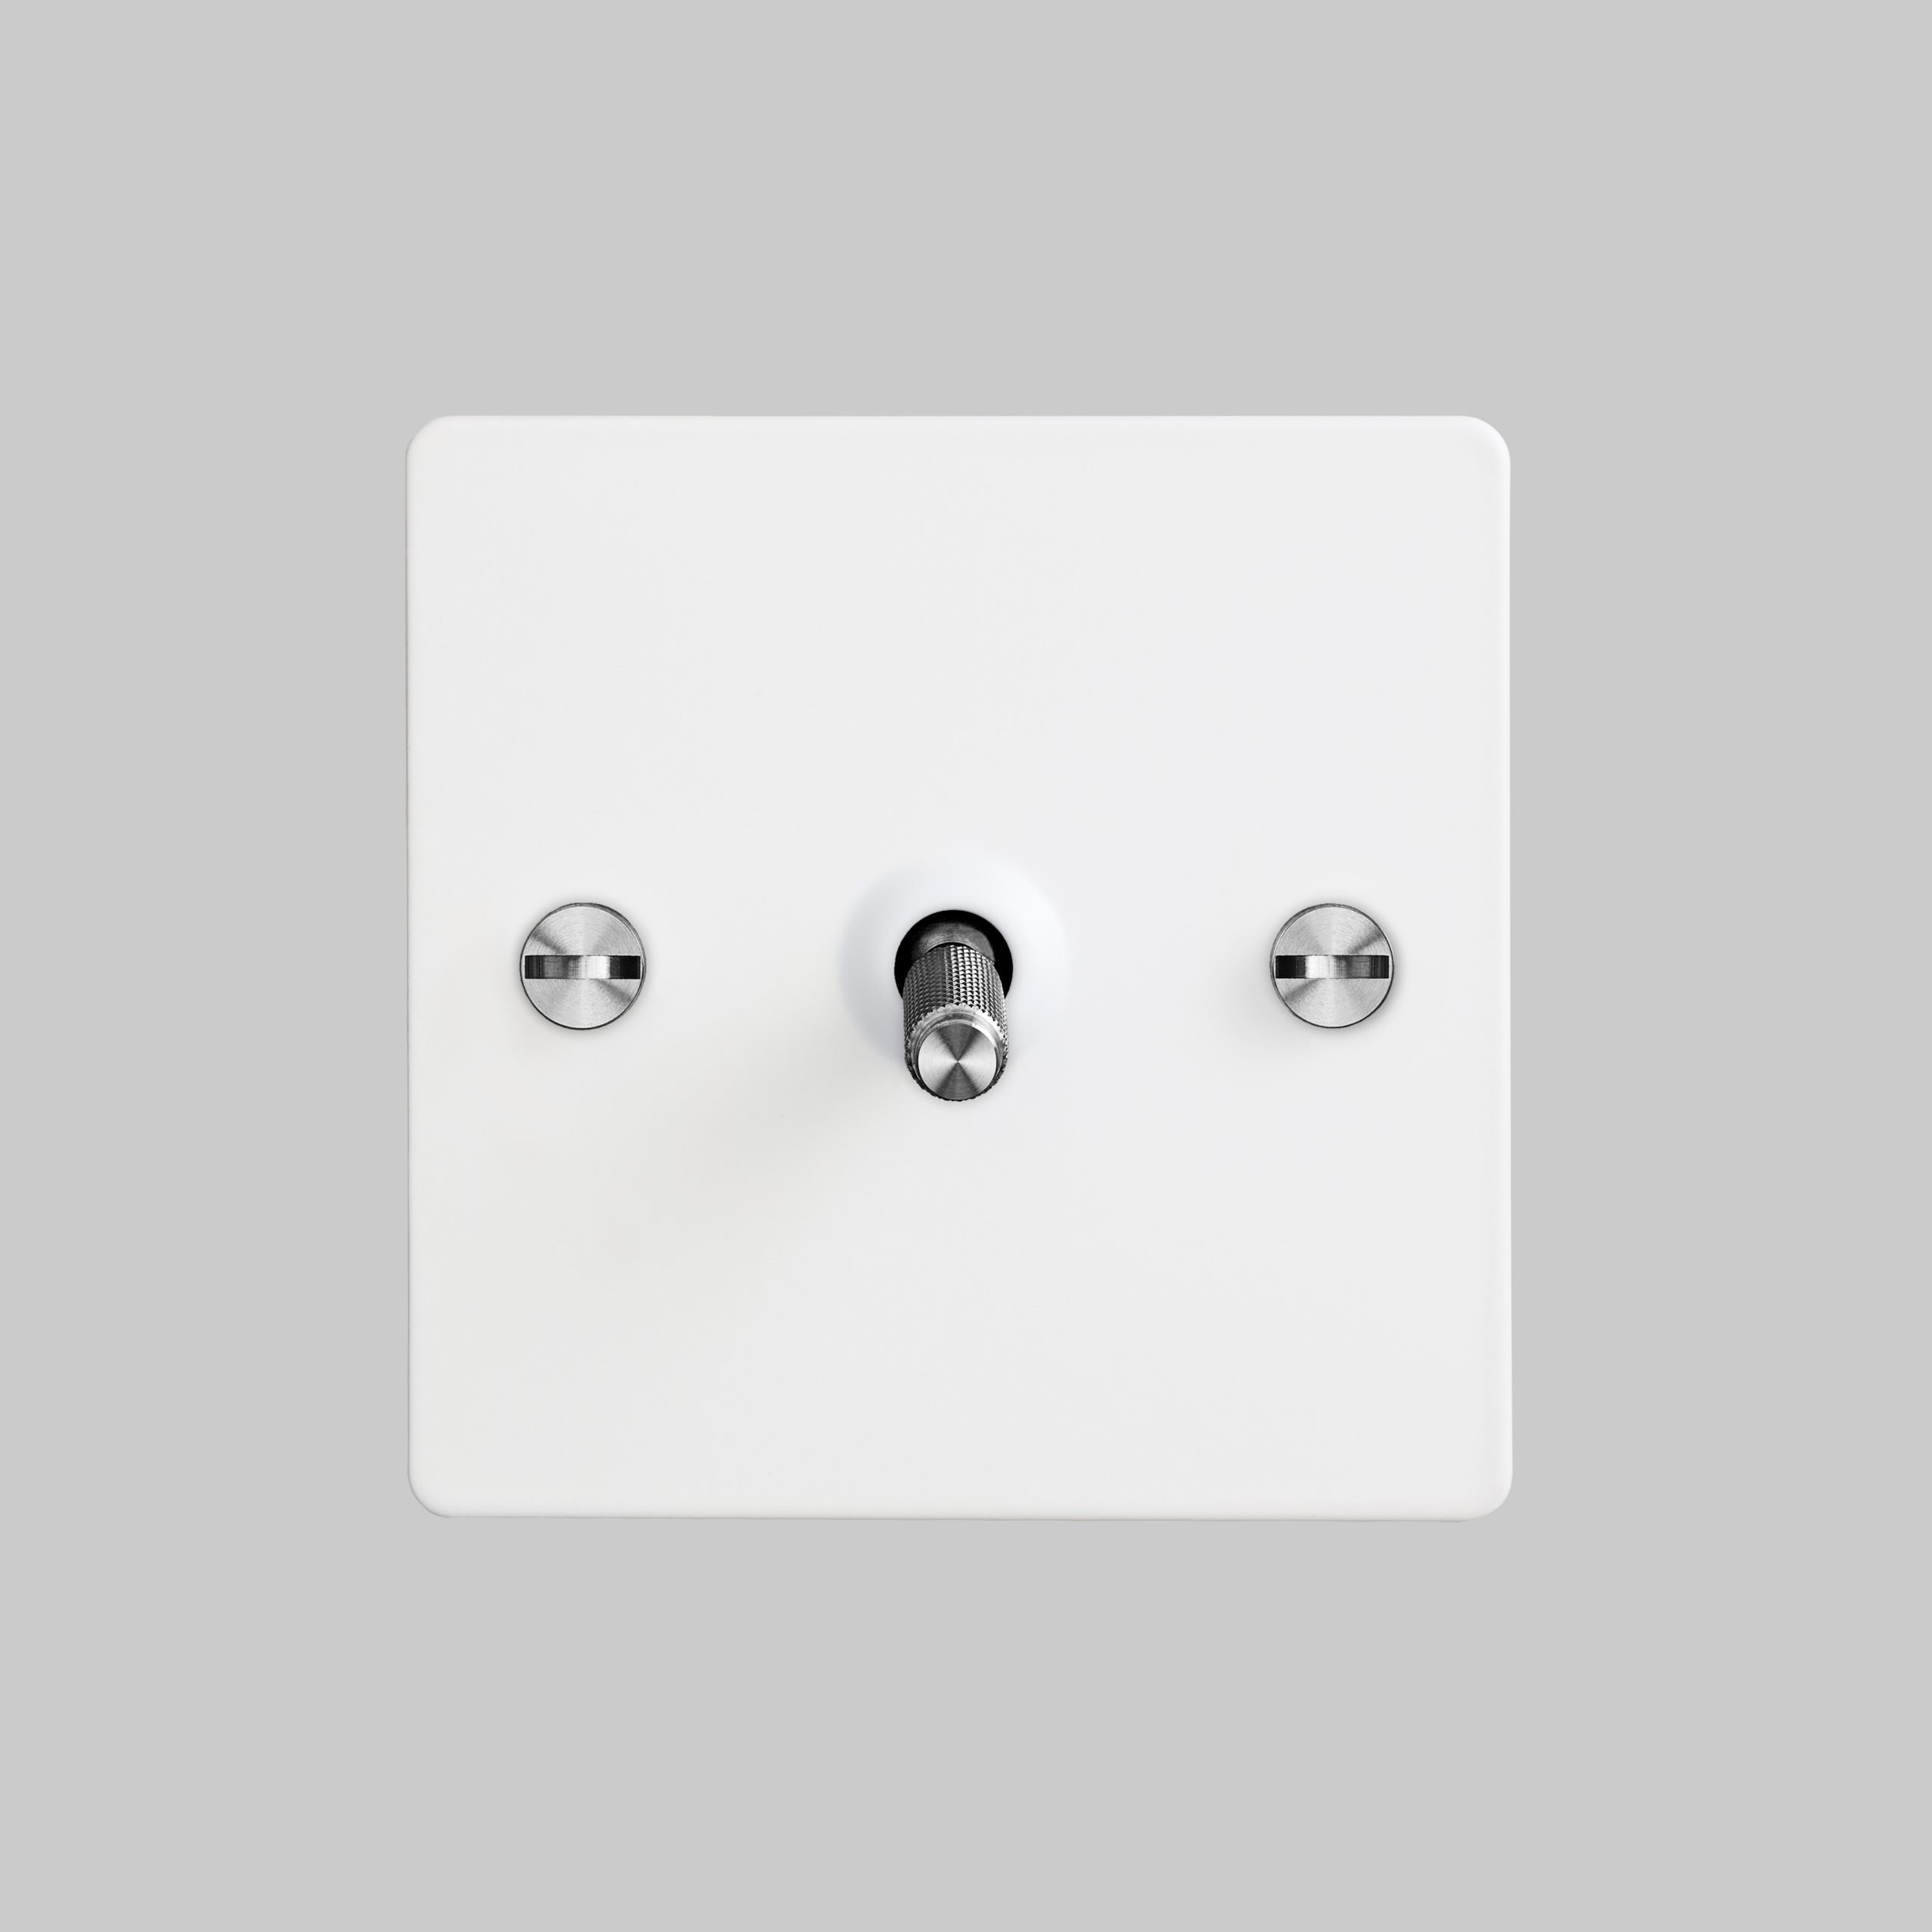 2. 1G_Toggle_Front_White_Steel